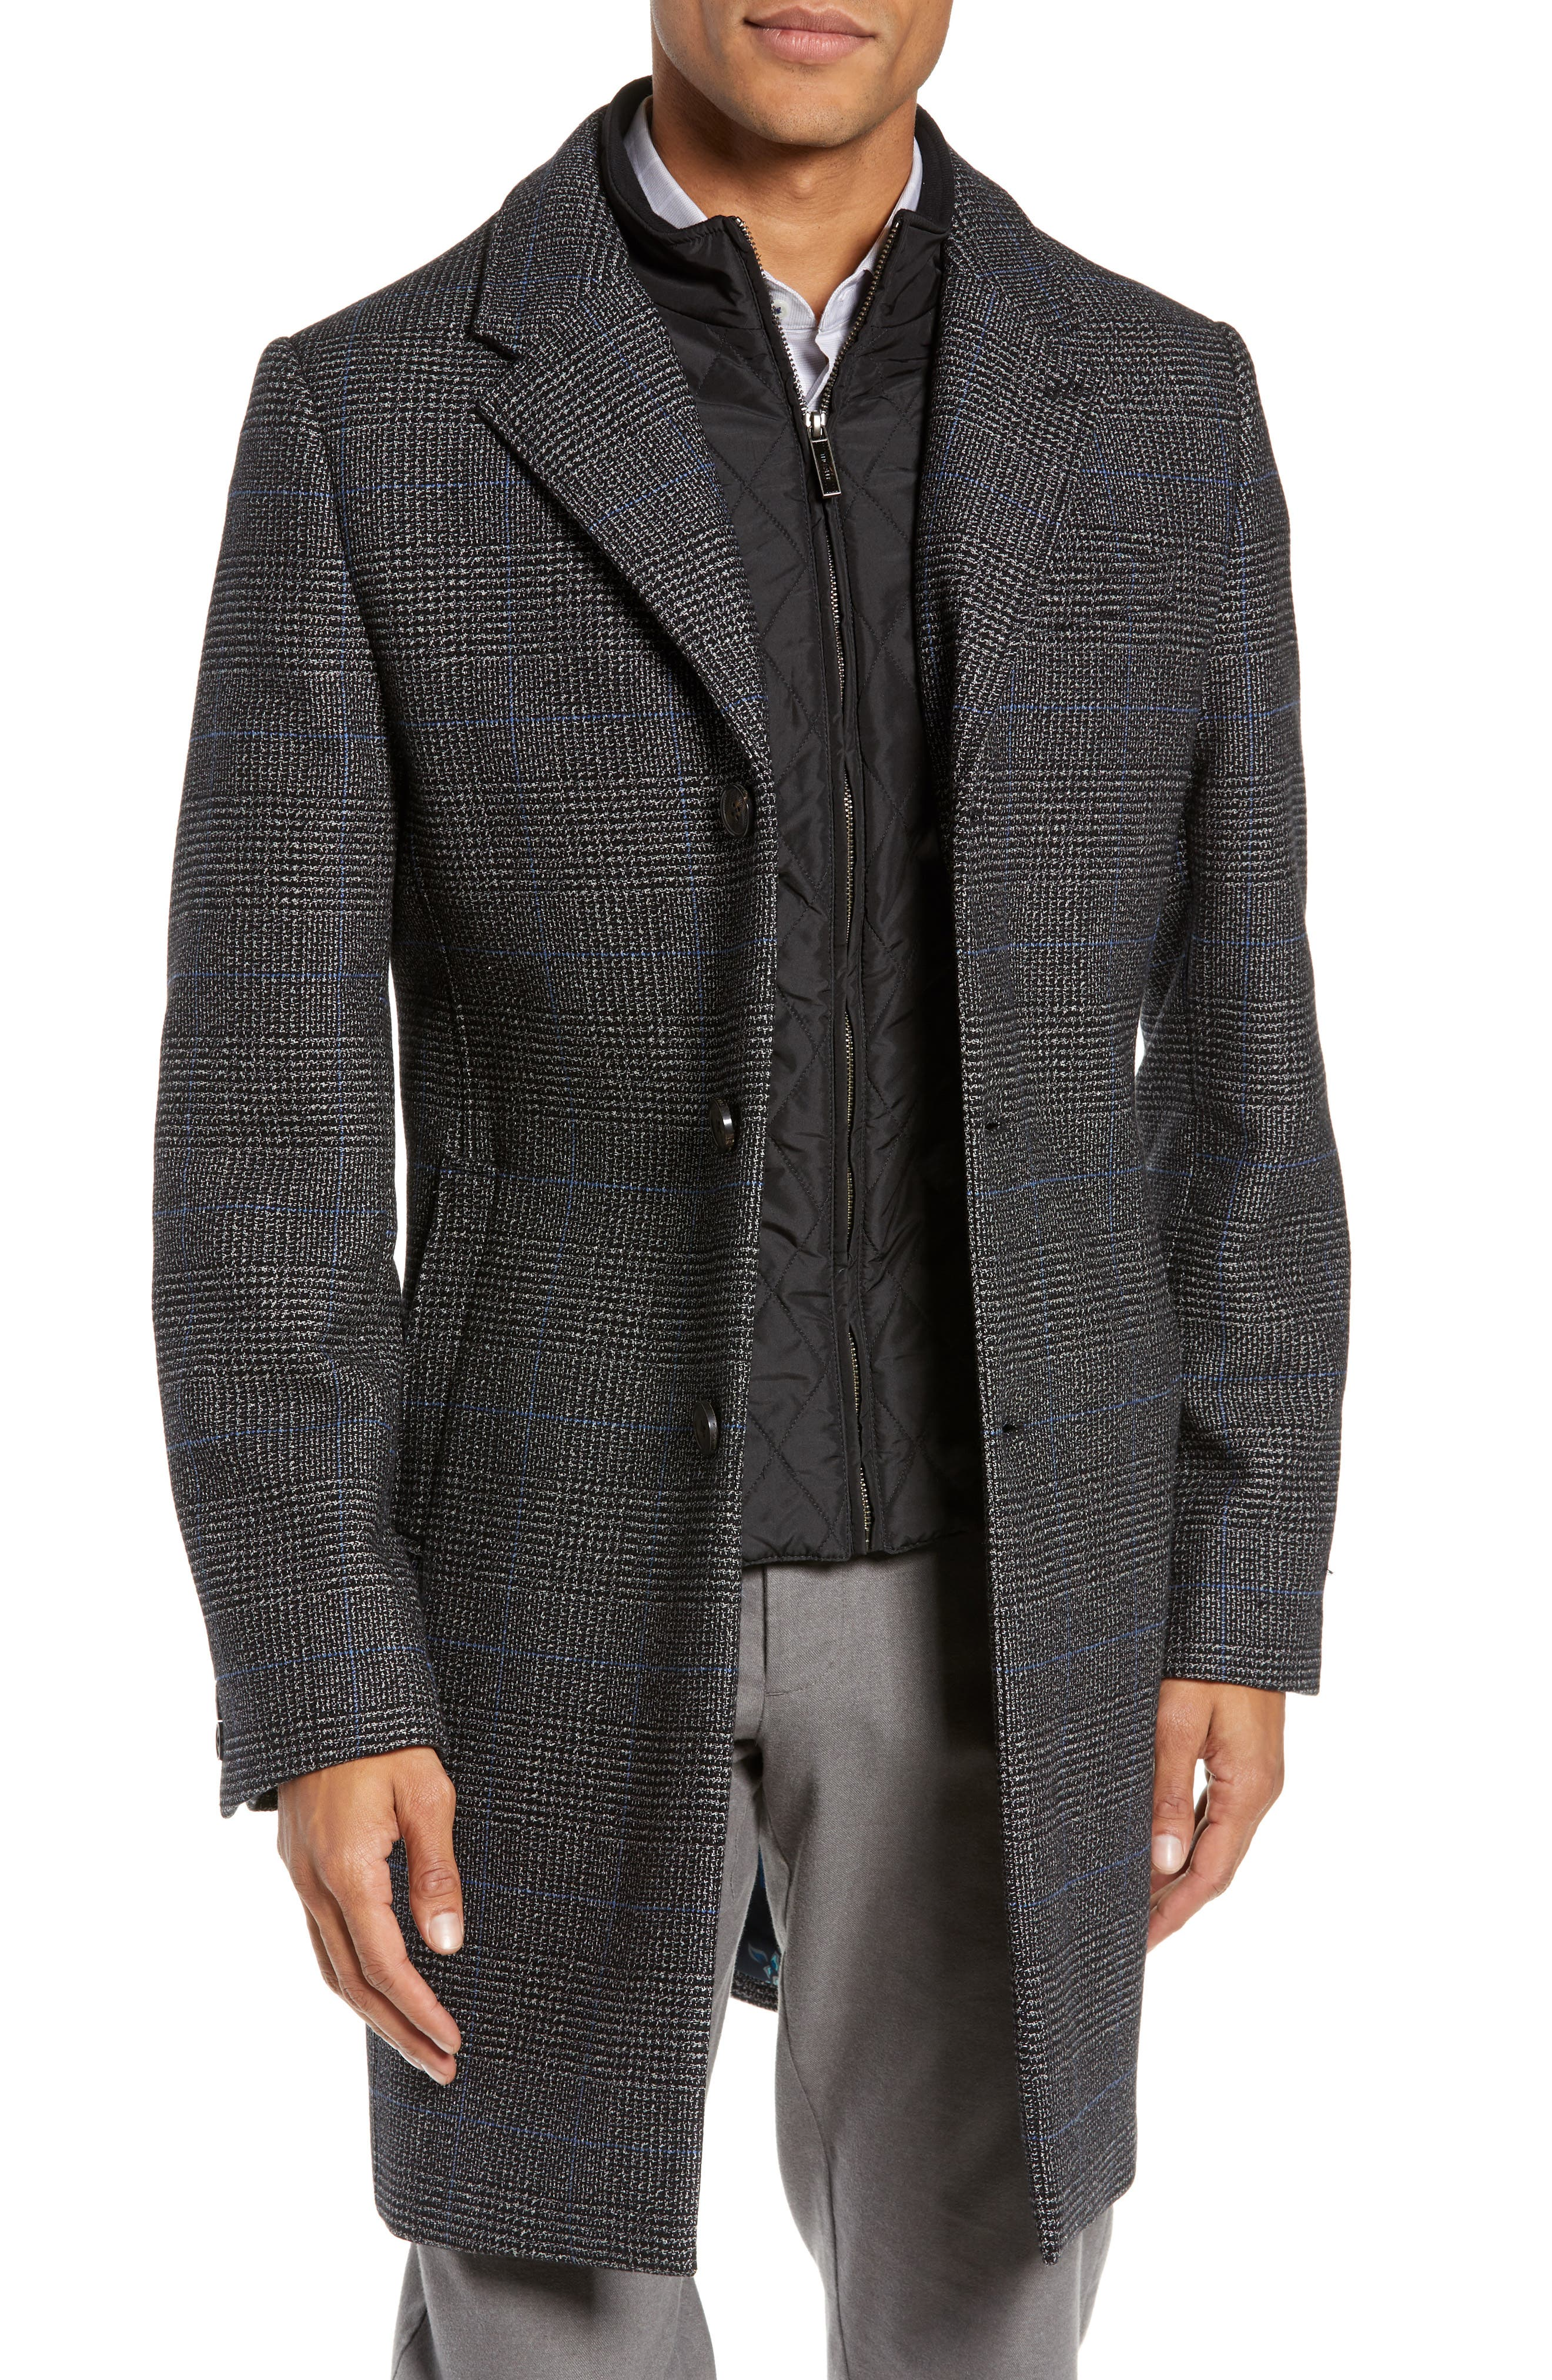 Plaid Stretch Wool & Cotton Overcoat,                             Main thumbnail 1, color,                             CHARCOAL